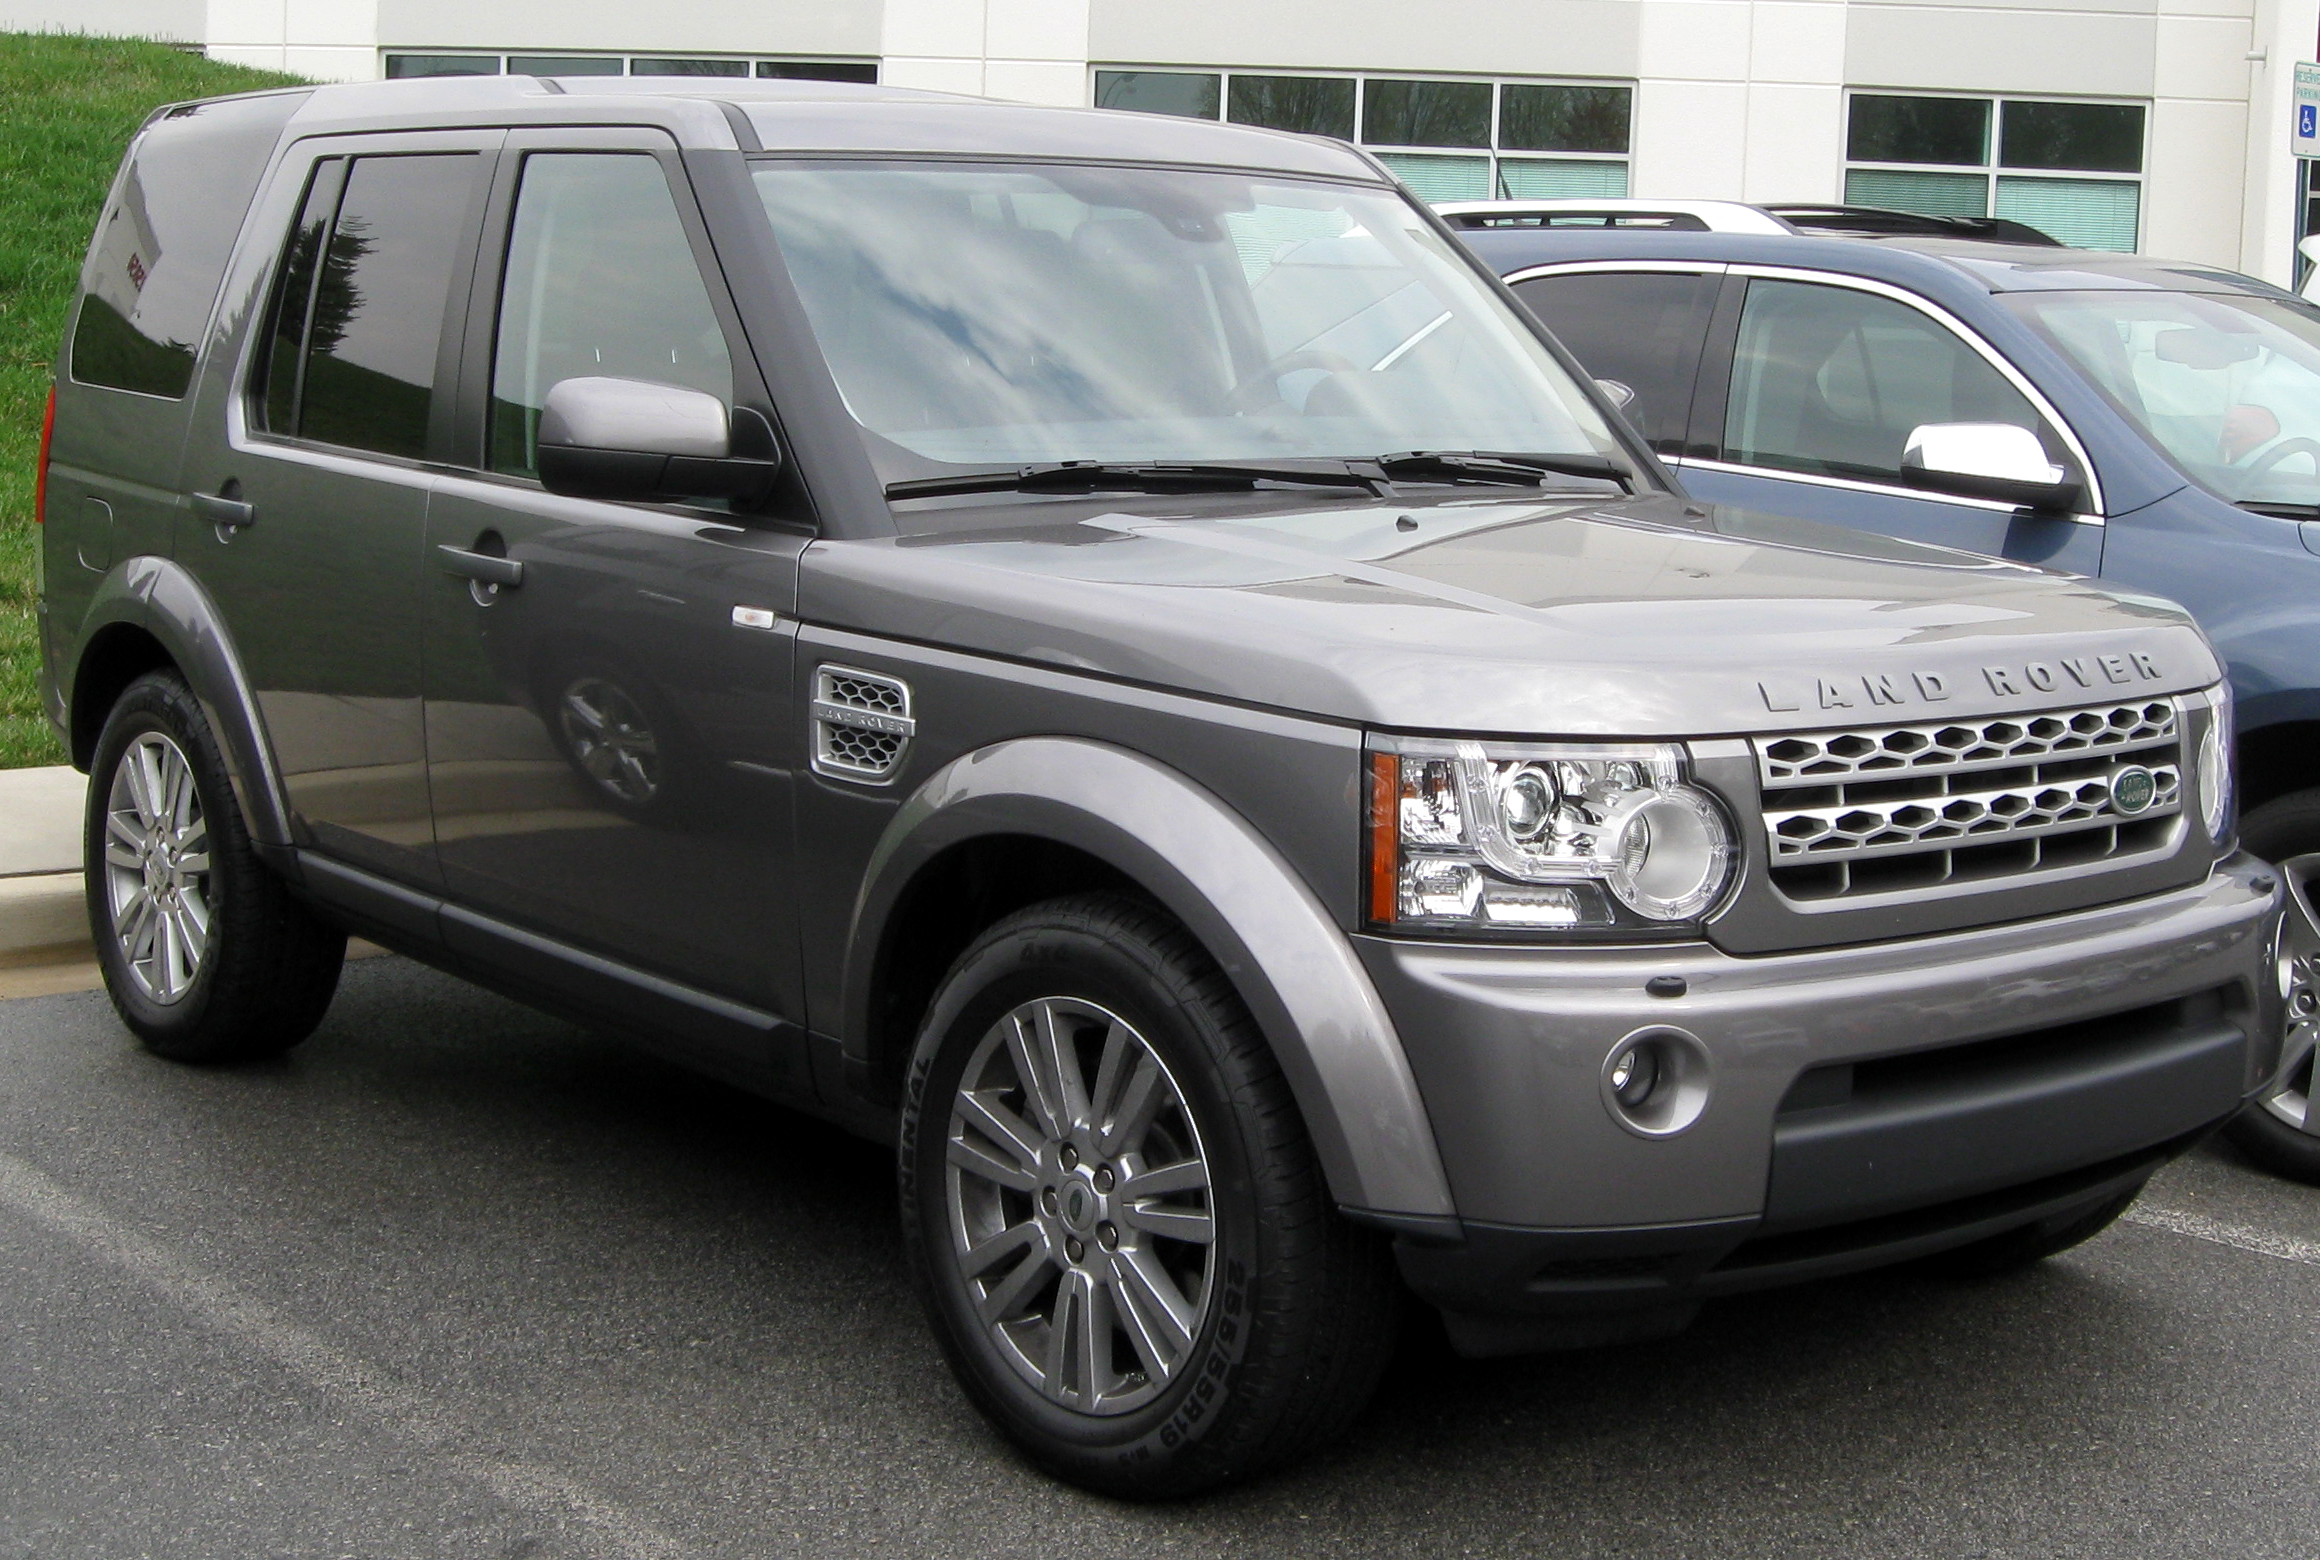 2012 Land Rover LR4 Reviews, Ratings, Prices - Consumer ...